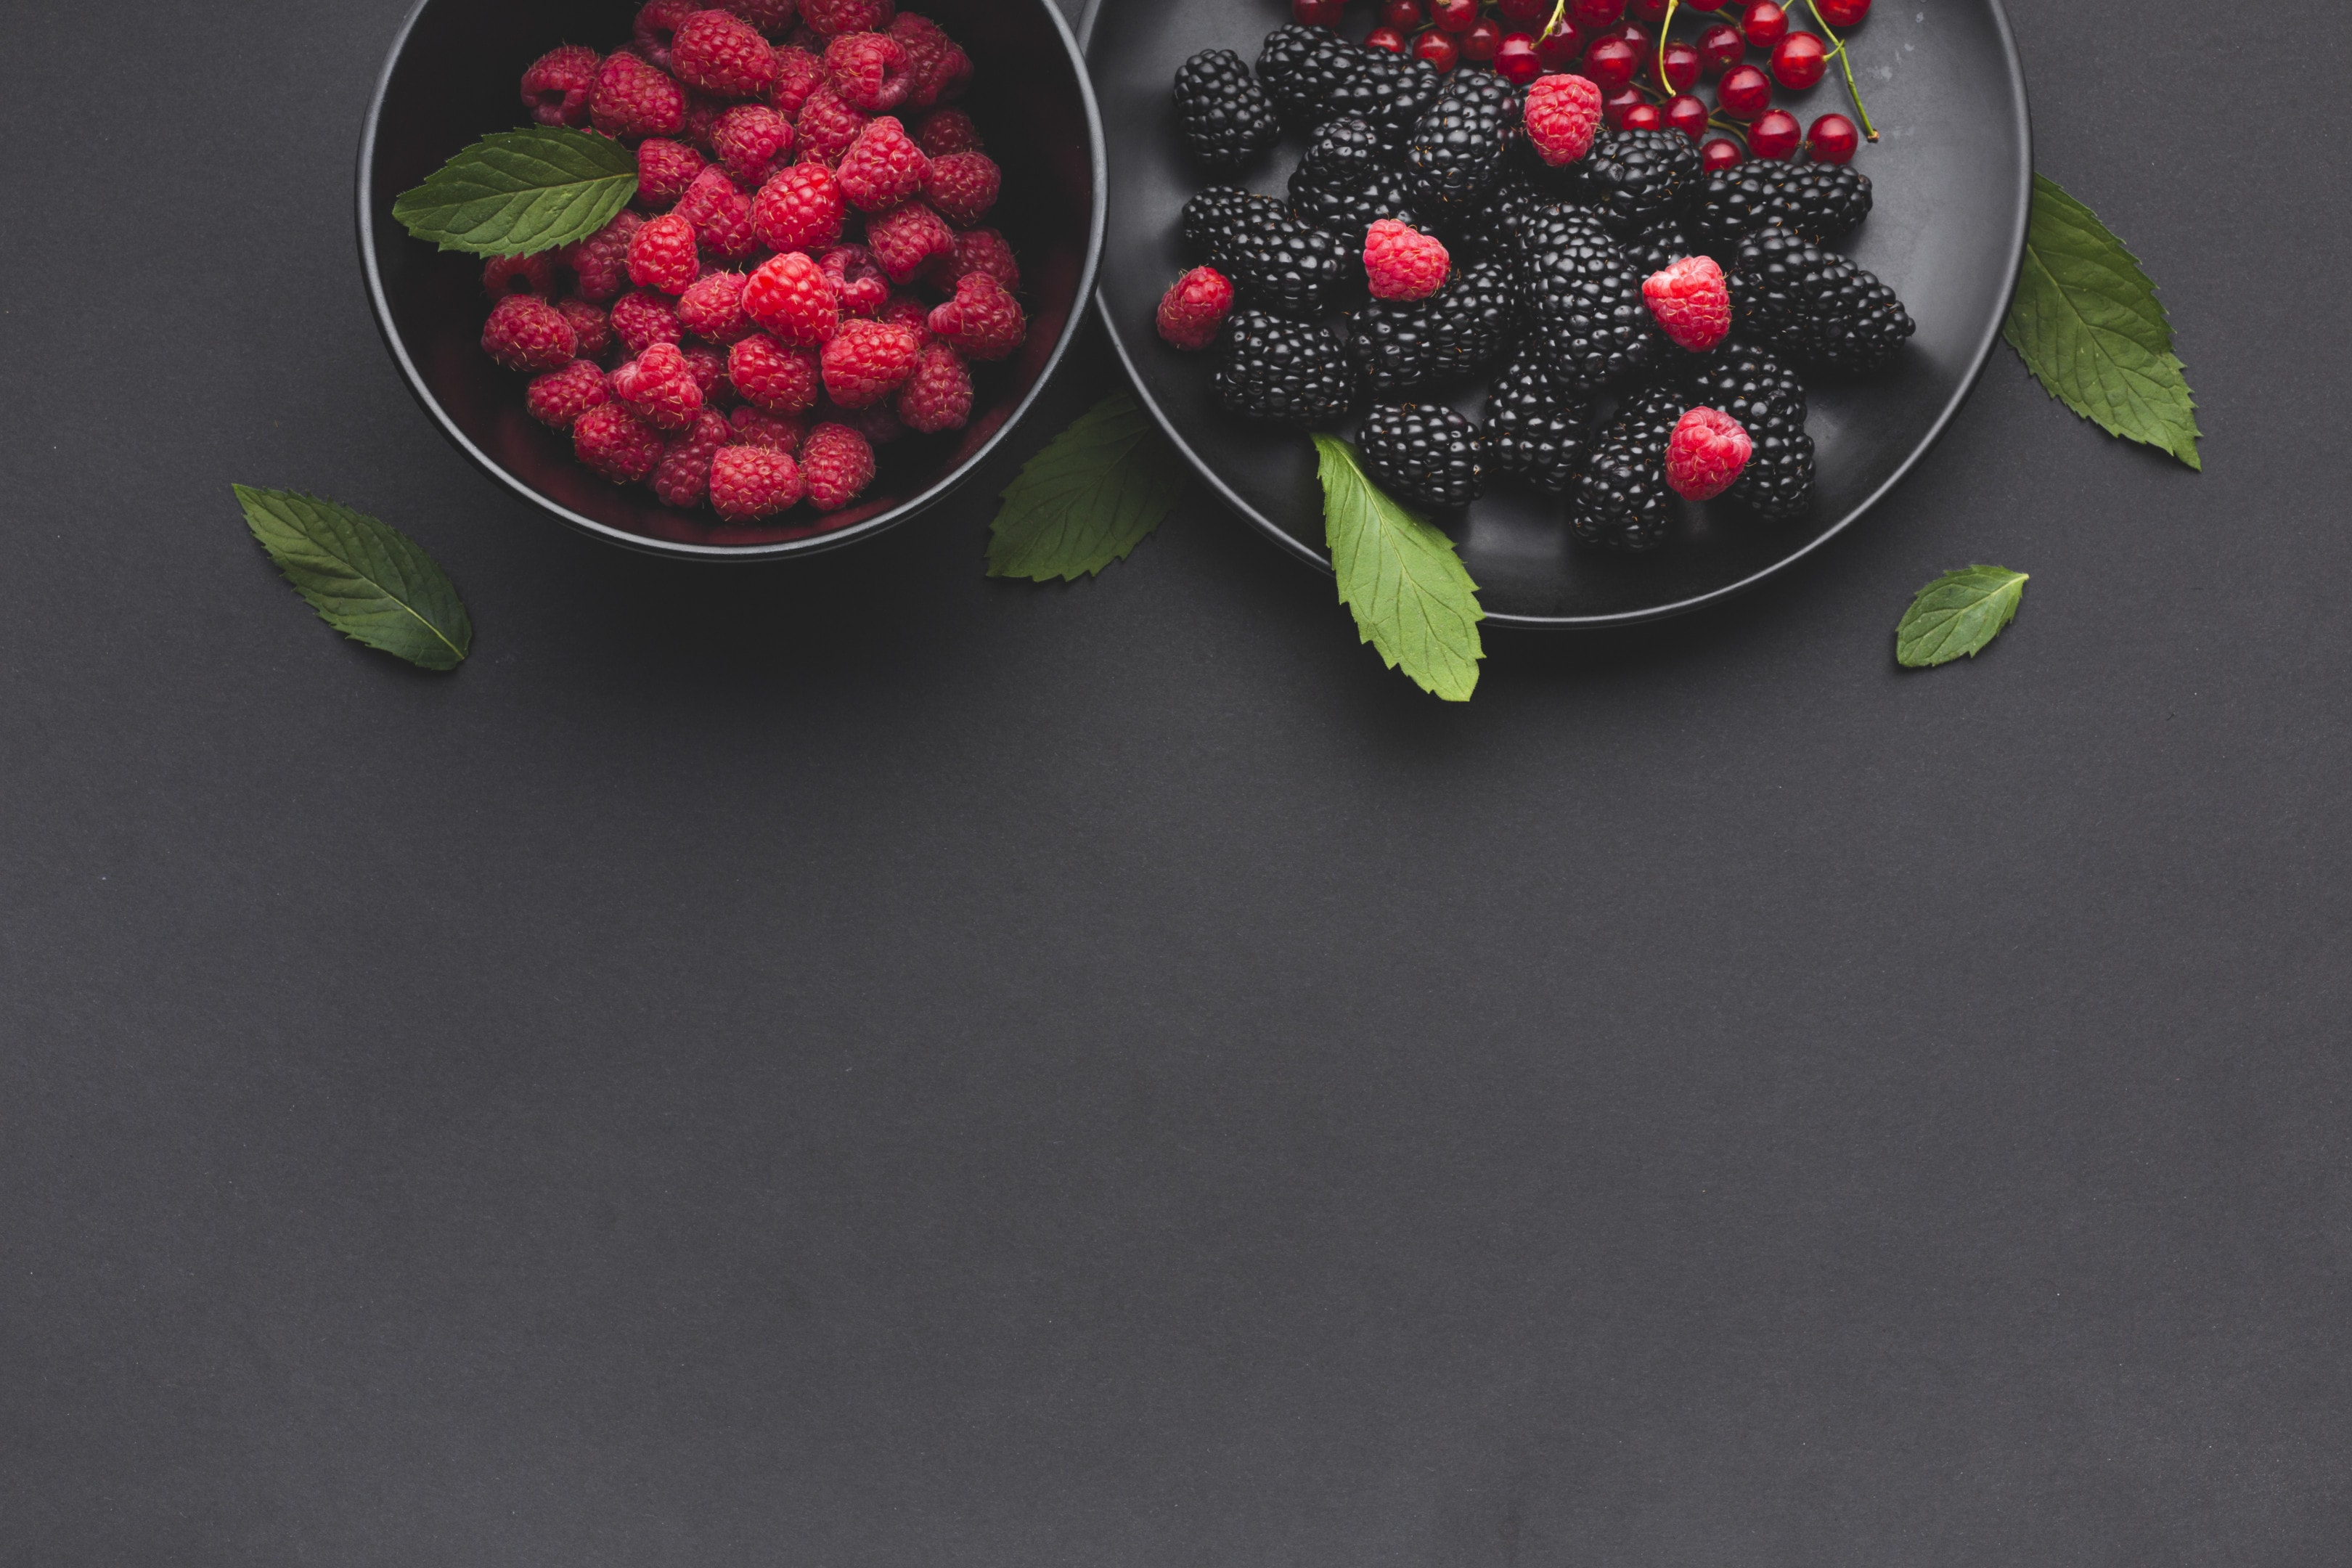 Plate and Bowl of Fresh Berries on Dark Table